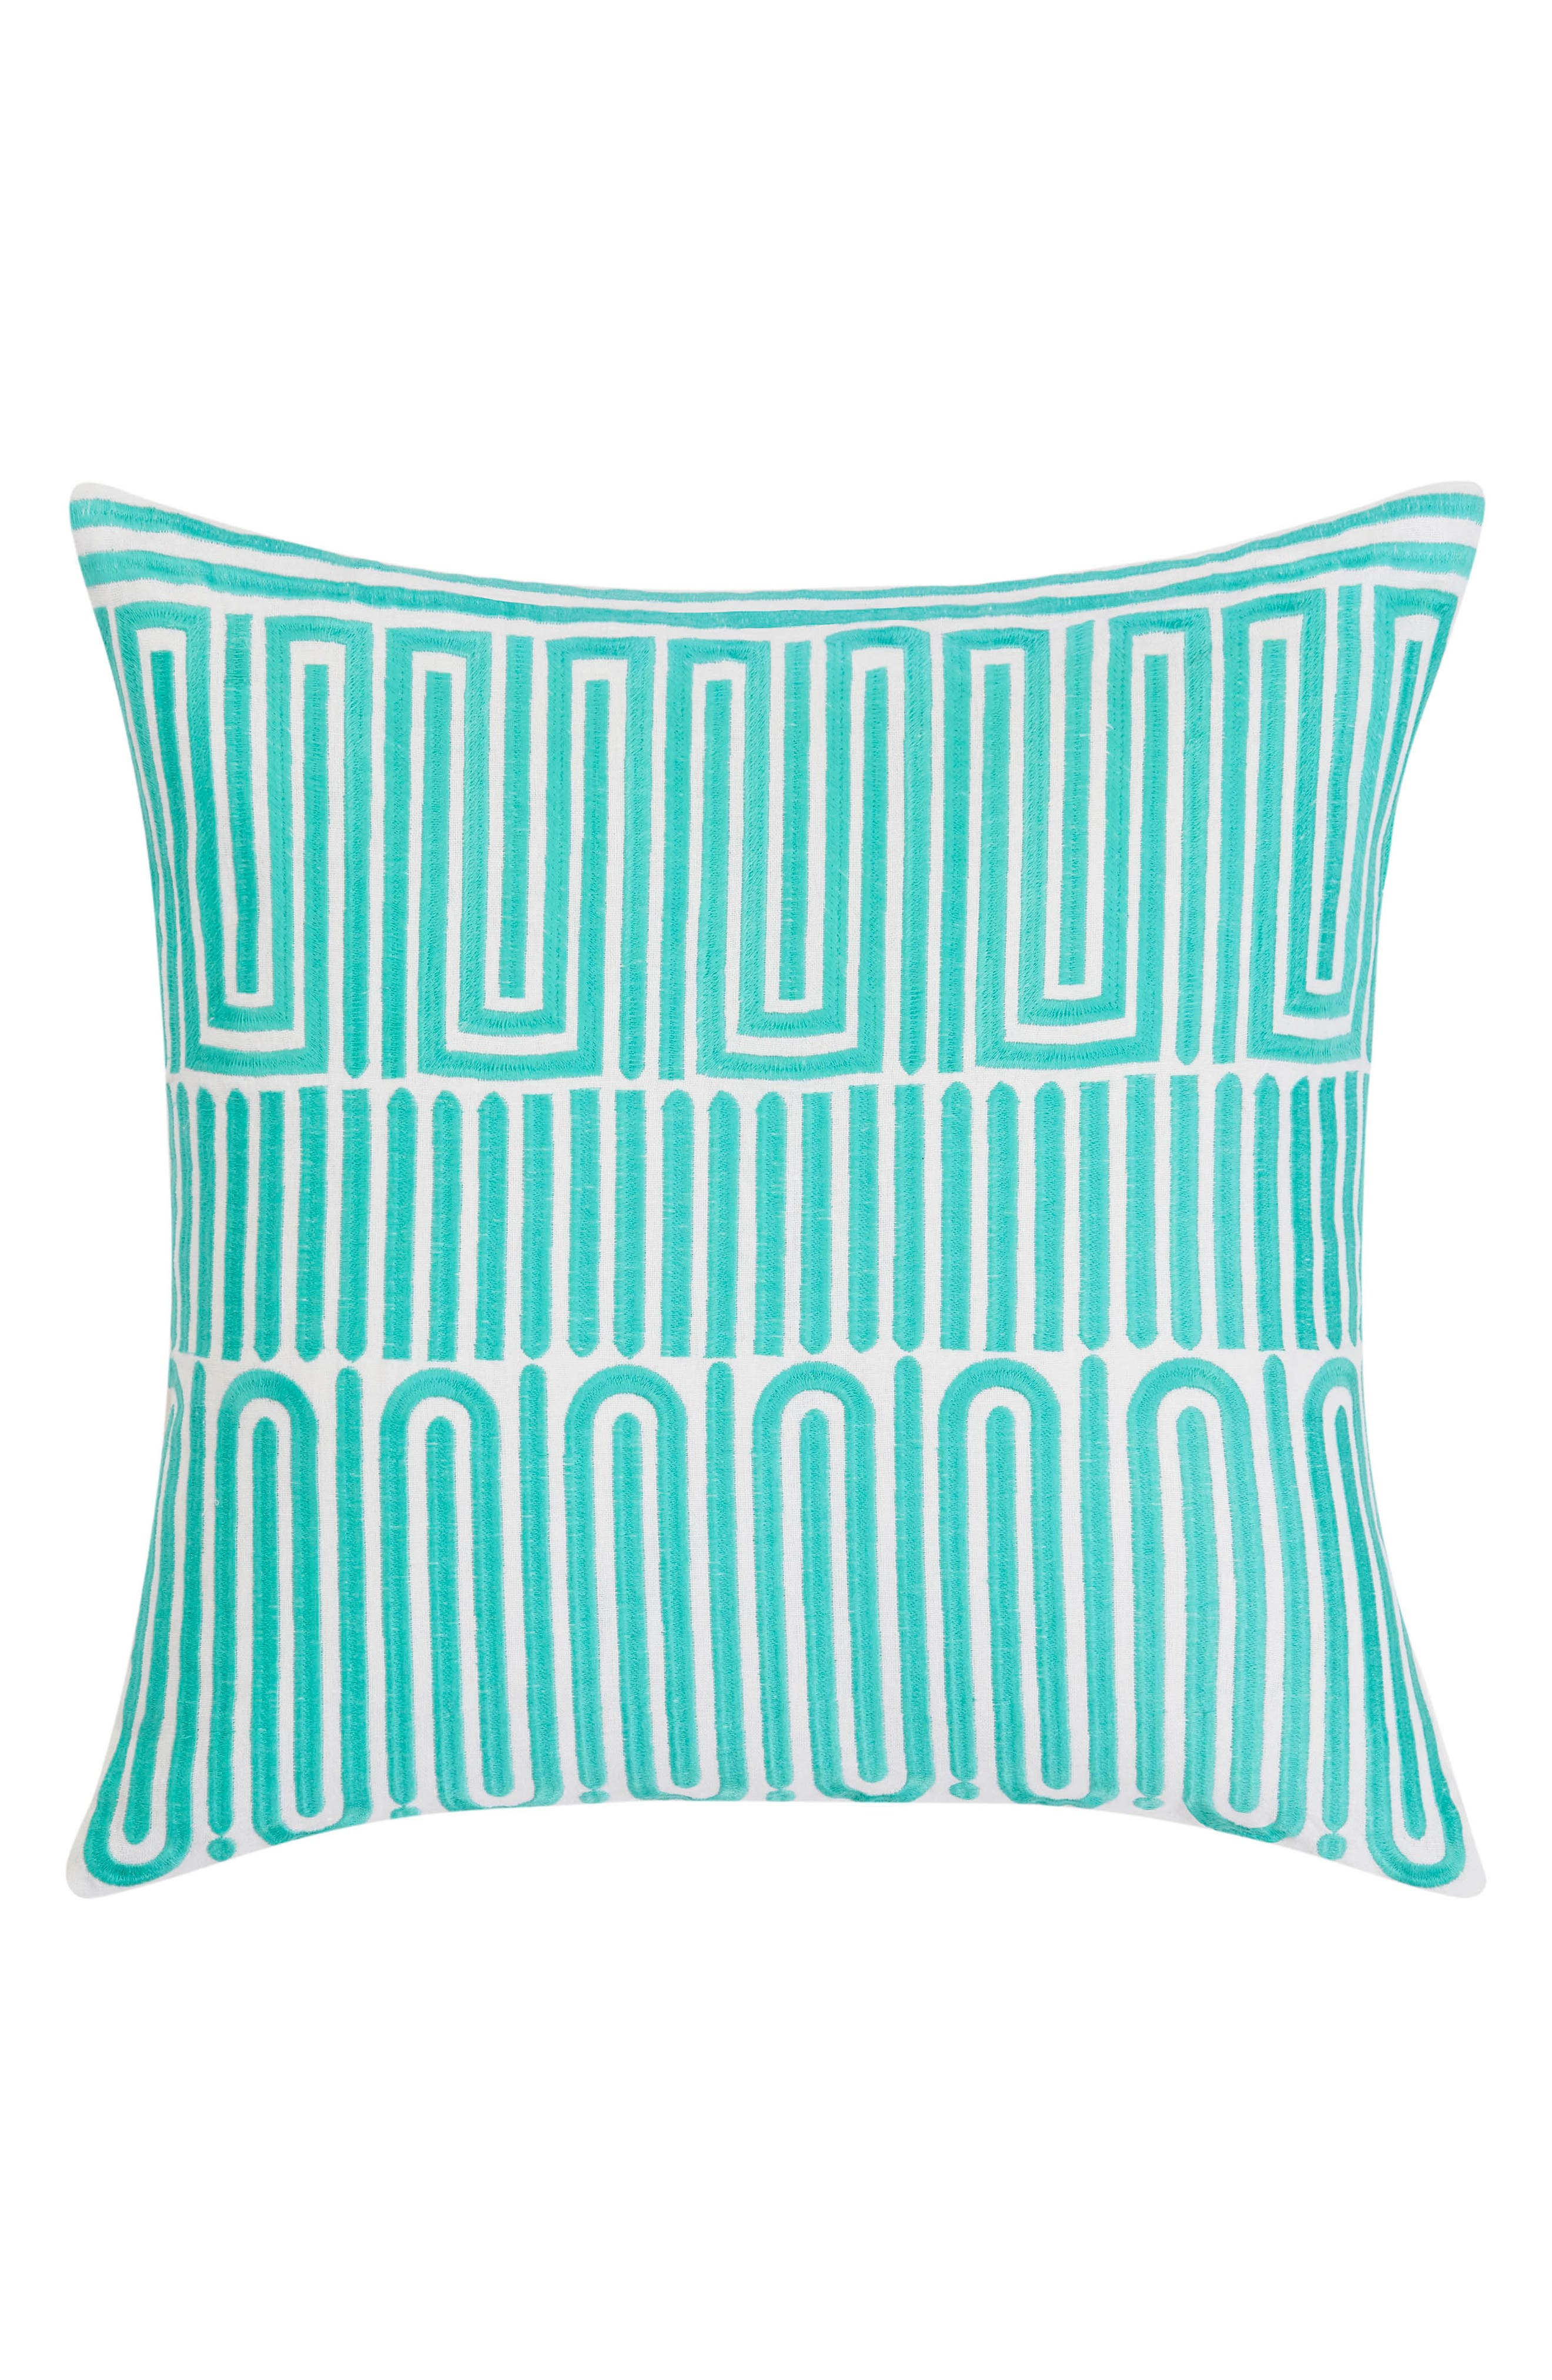 Racket Club Accent Pillow,                             Main thumbnail 1, color,                             Turquoise